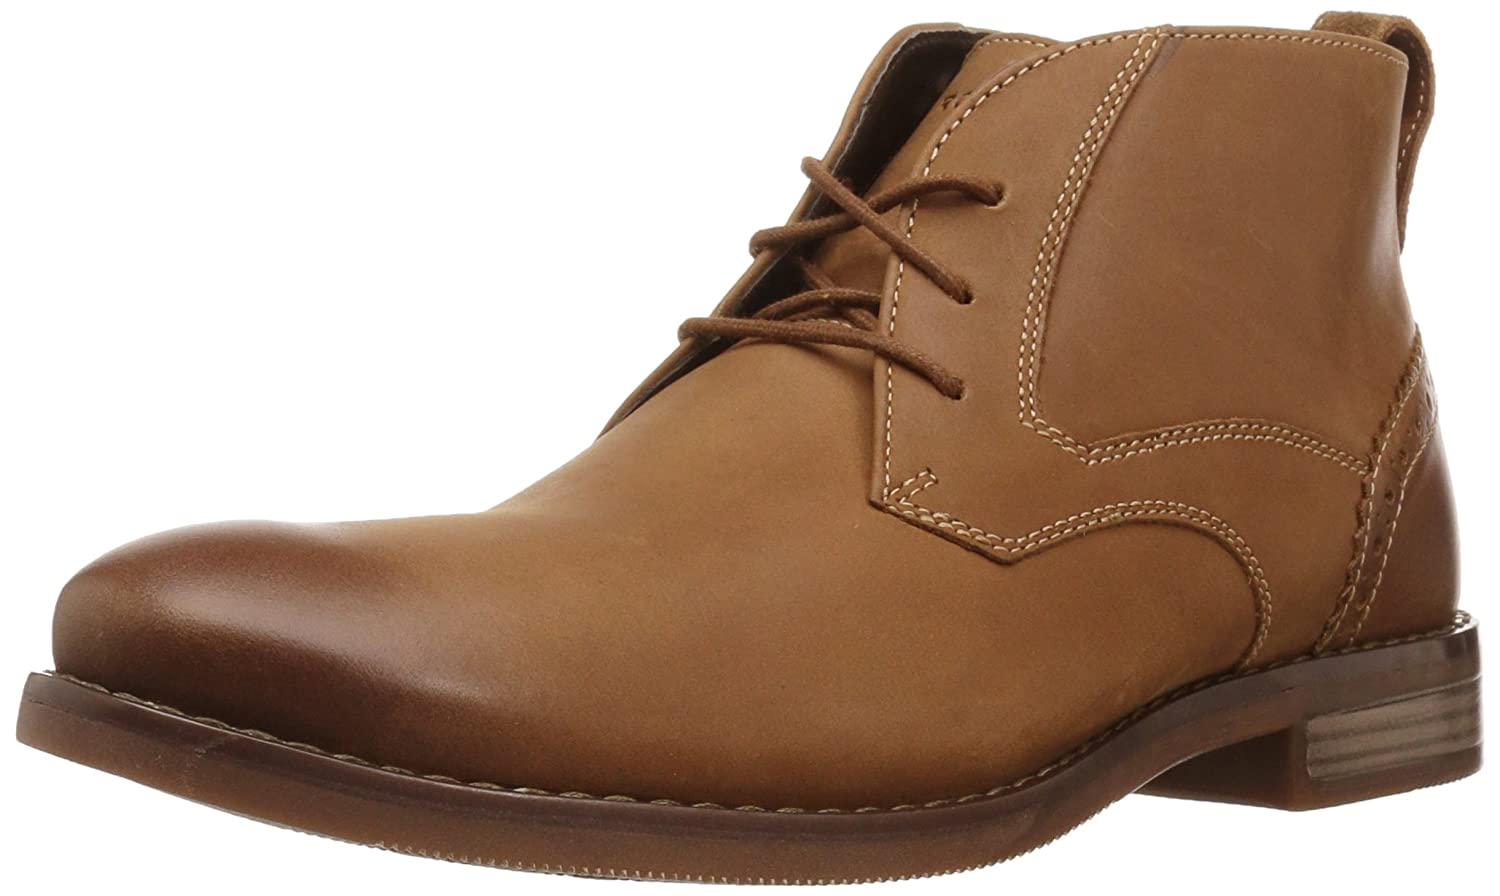 Rockport Men's Karwin Chukka Chukka Boot